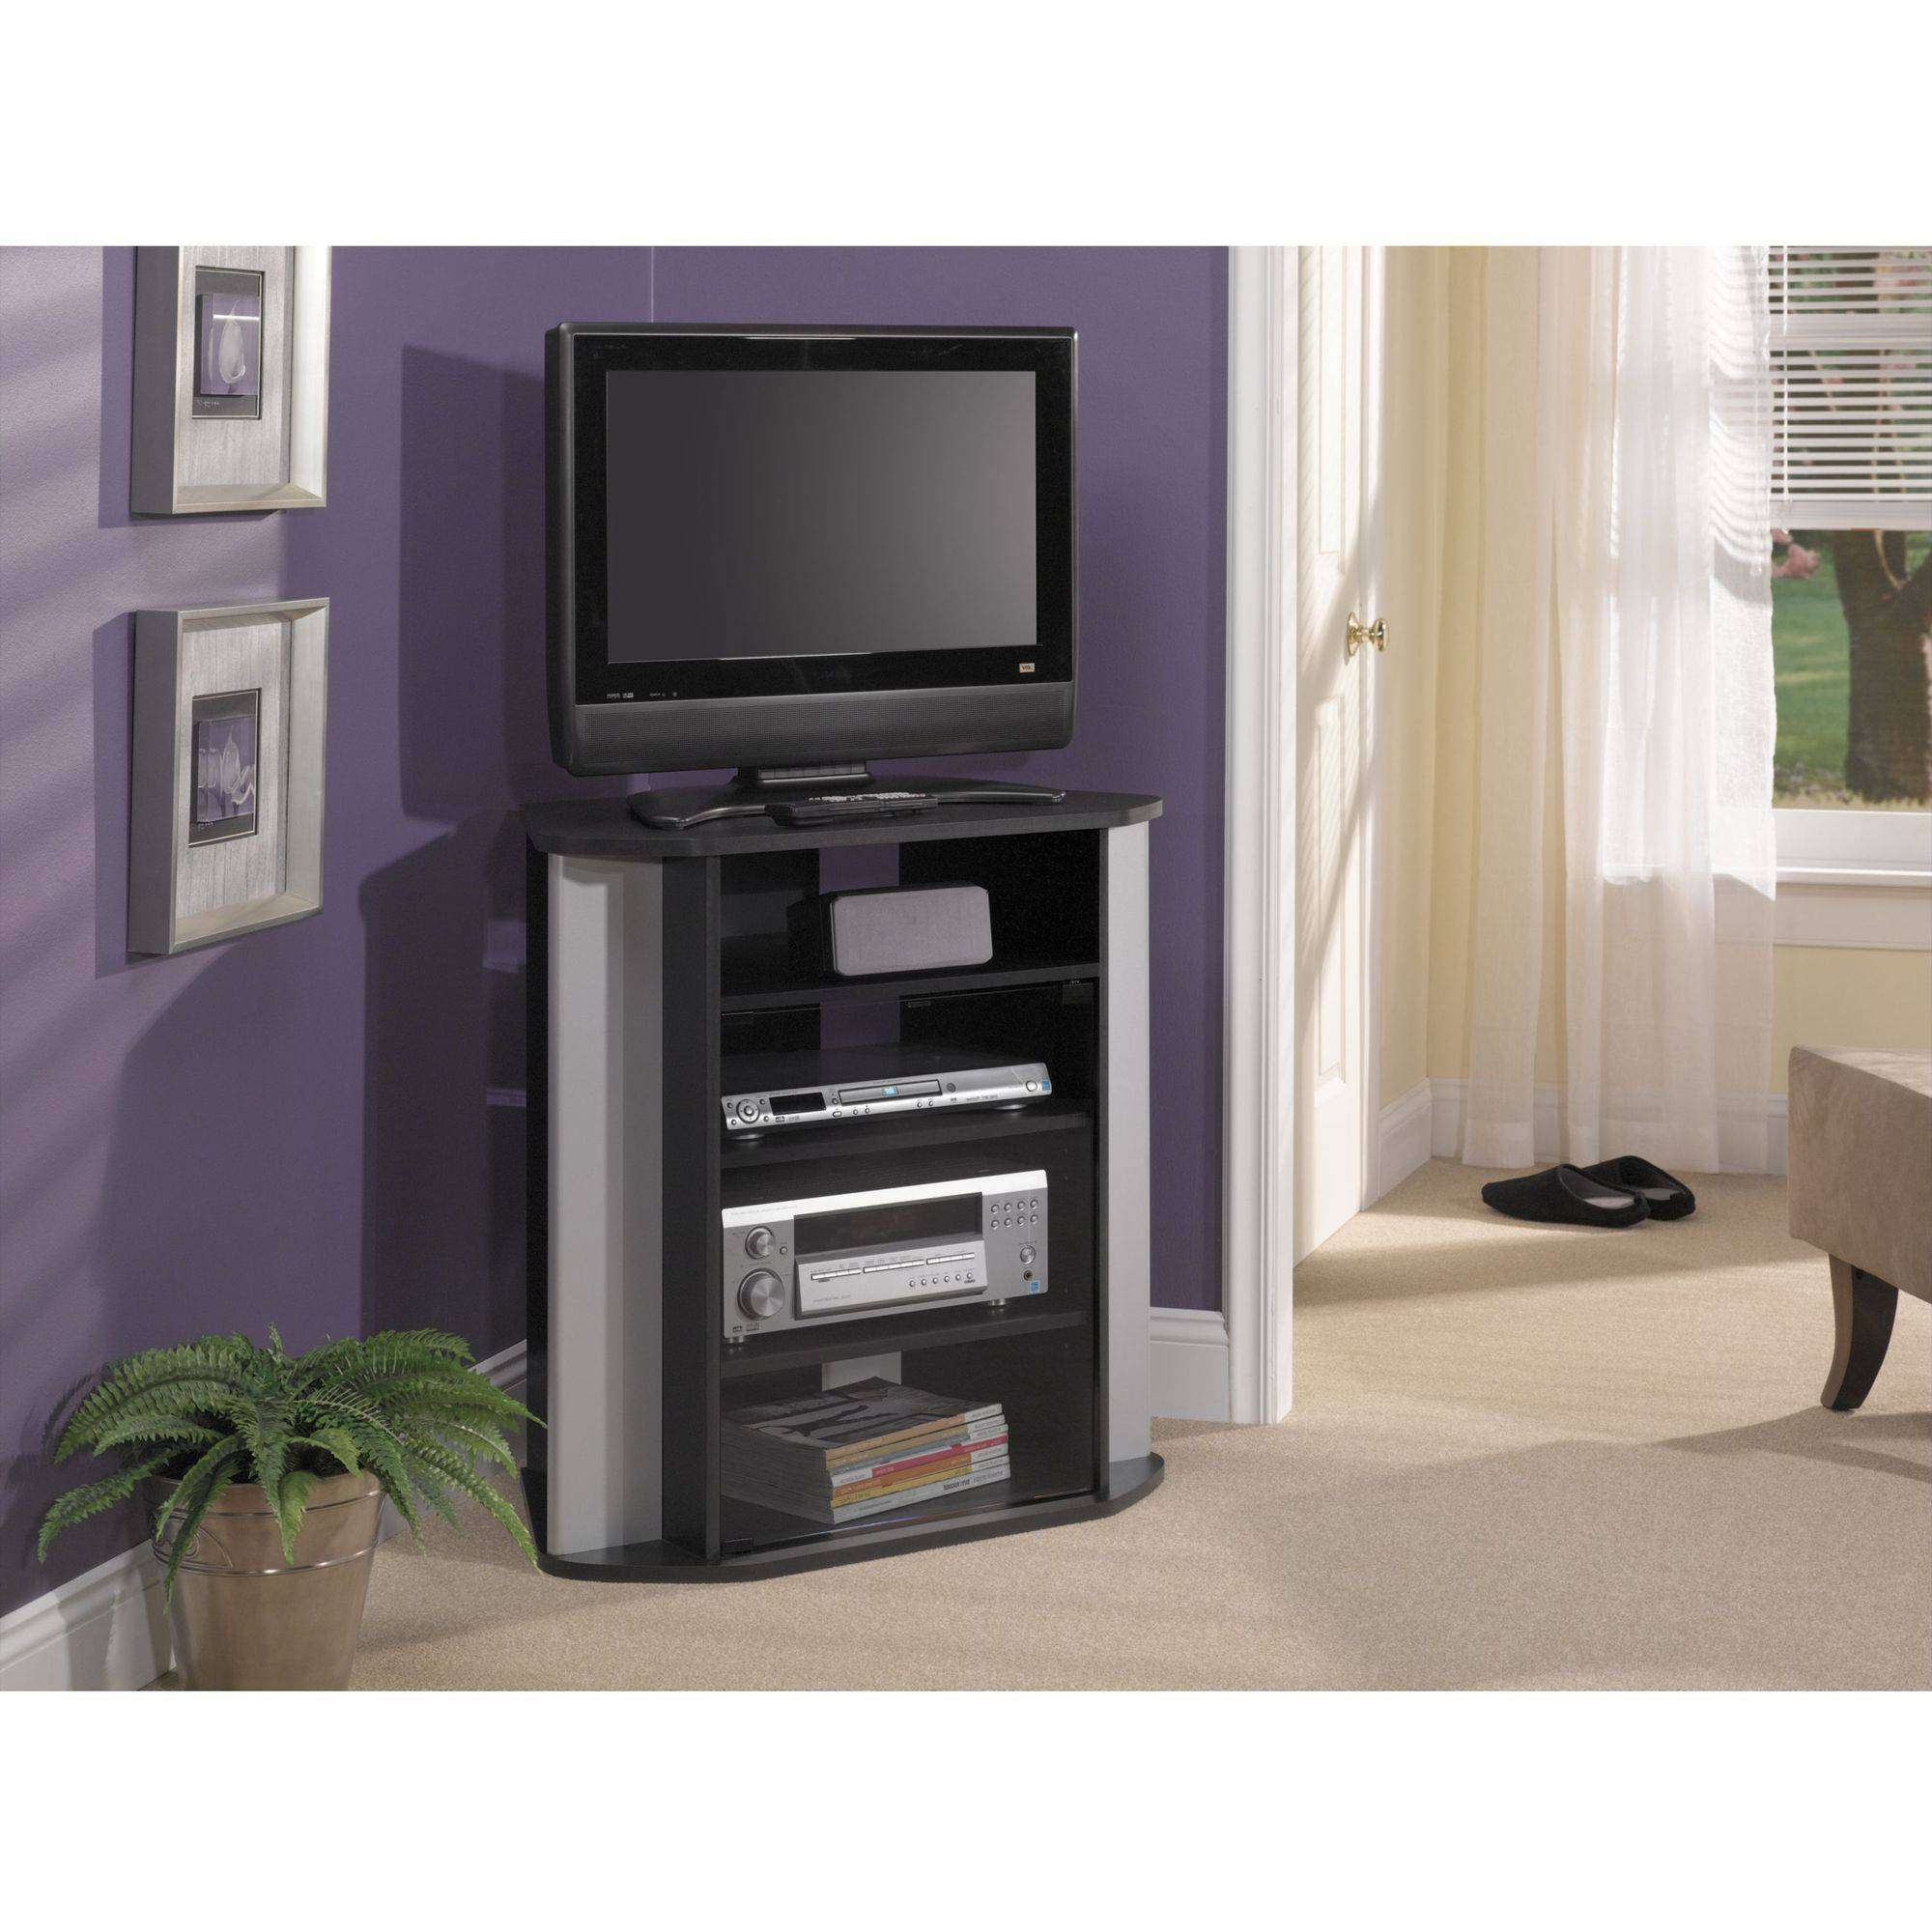 Corner Tv Stands – Walmart Intended For Corner Tv Stands For 46 Inch Flat Screen (View 15 of 15)